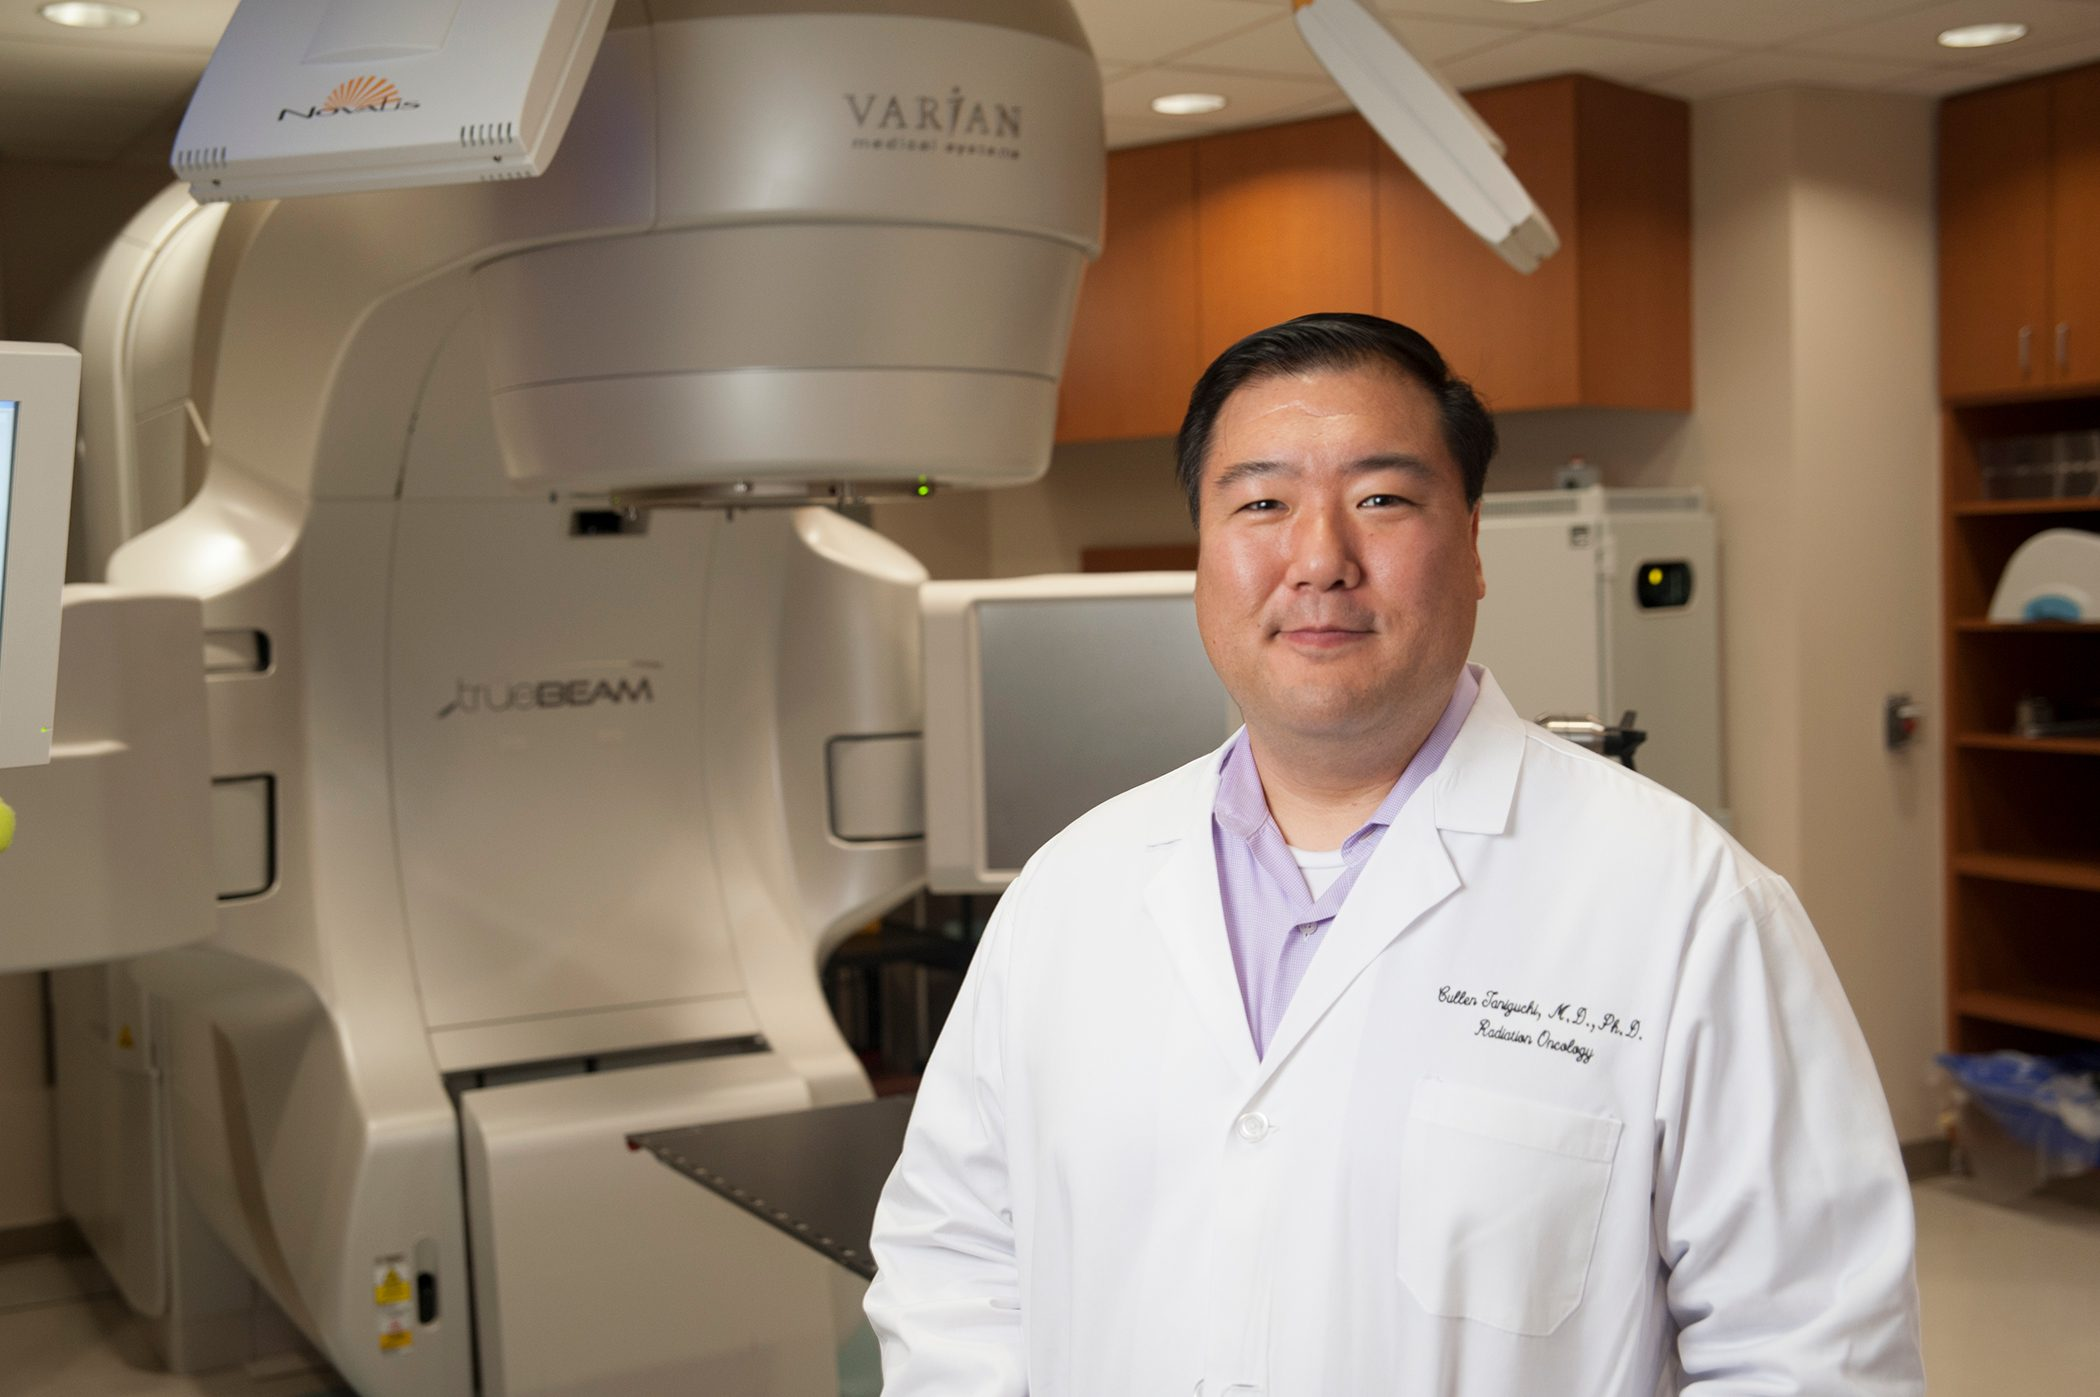 Radiation oncologist and anal cancer expert Cullen Taniguchi, M.D., Ph.D.